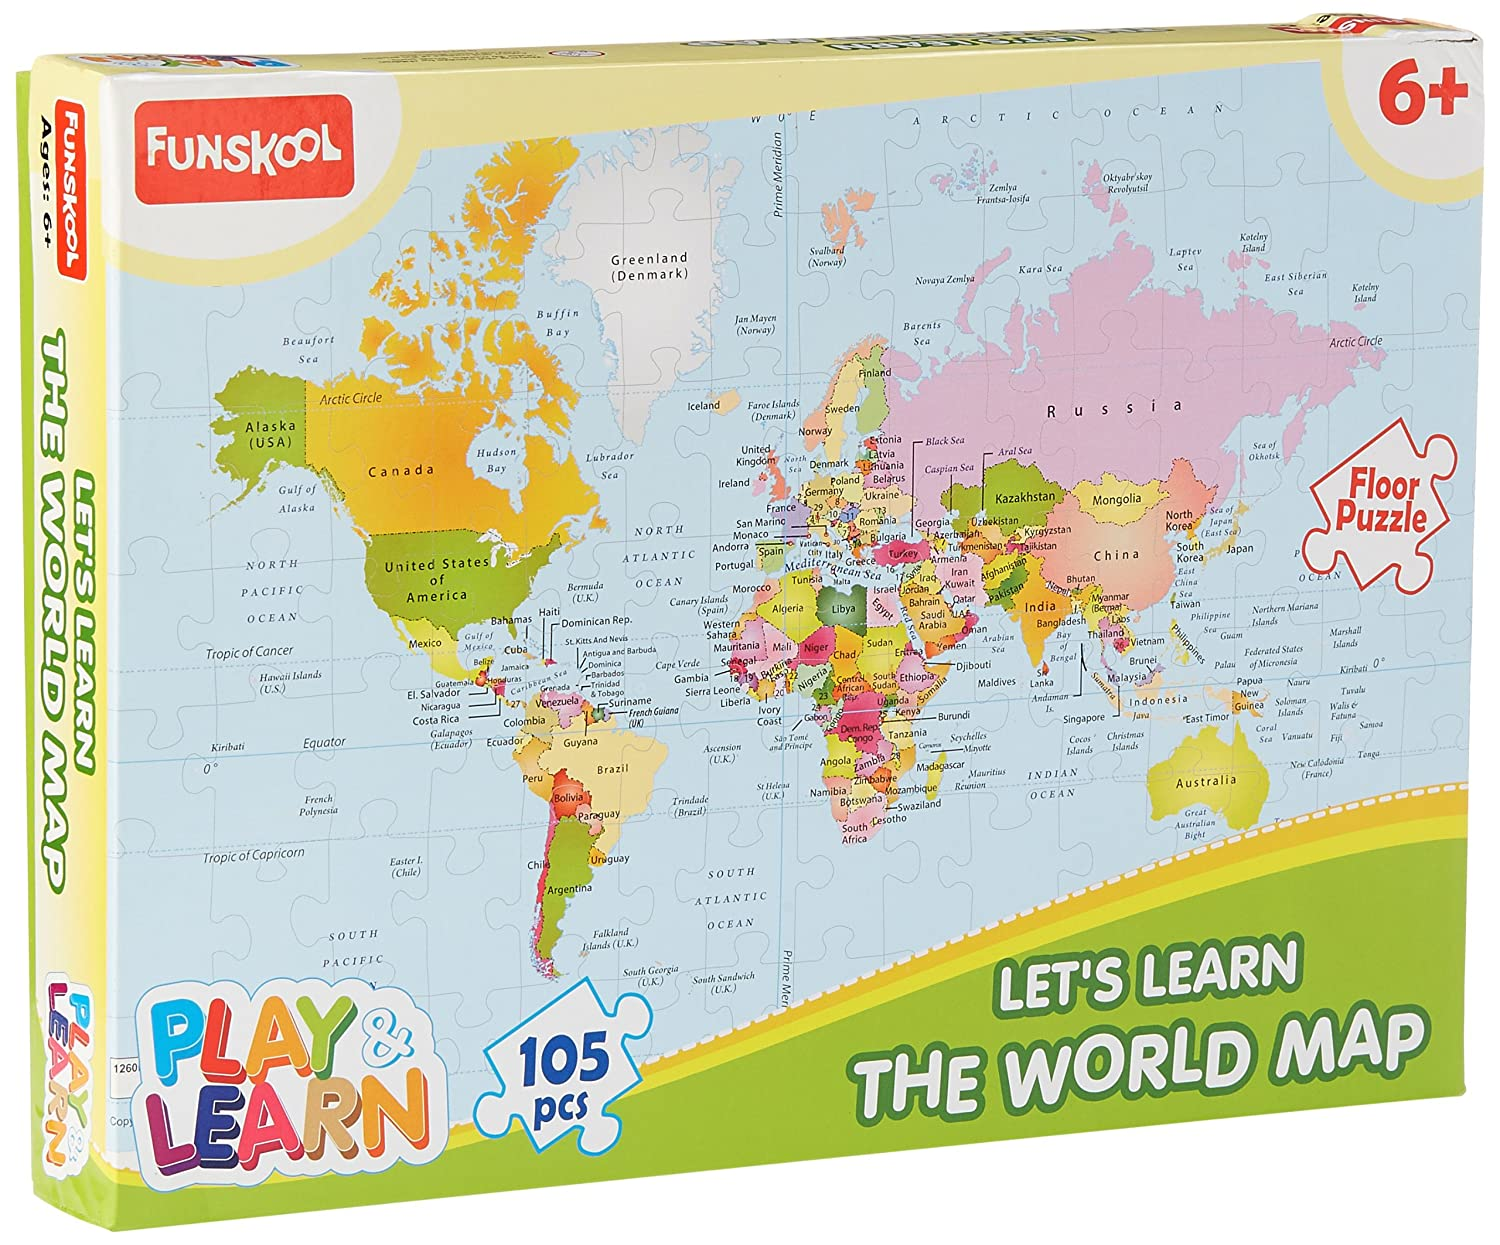 Buy Funskool World Map Puzzles Online At Low Prices In India - World maps online